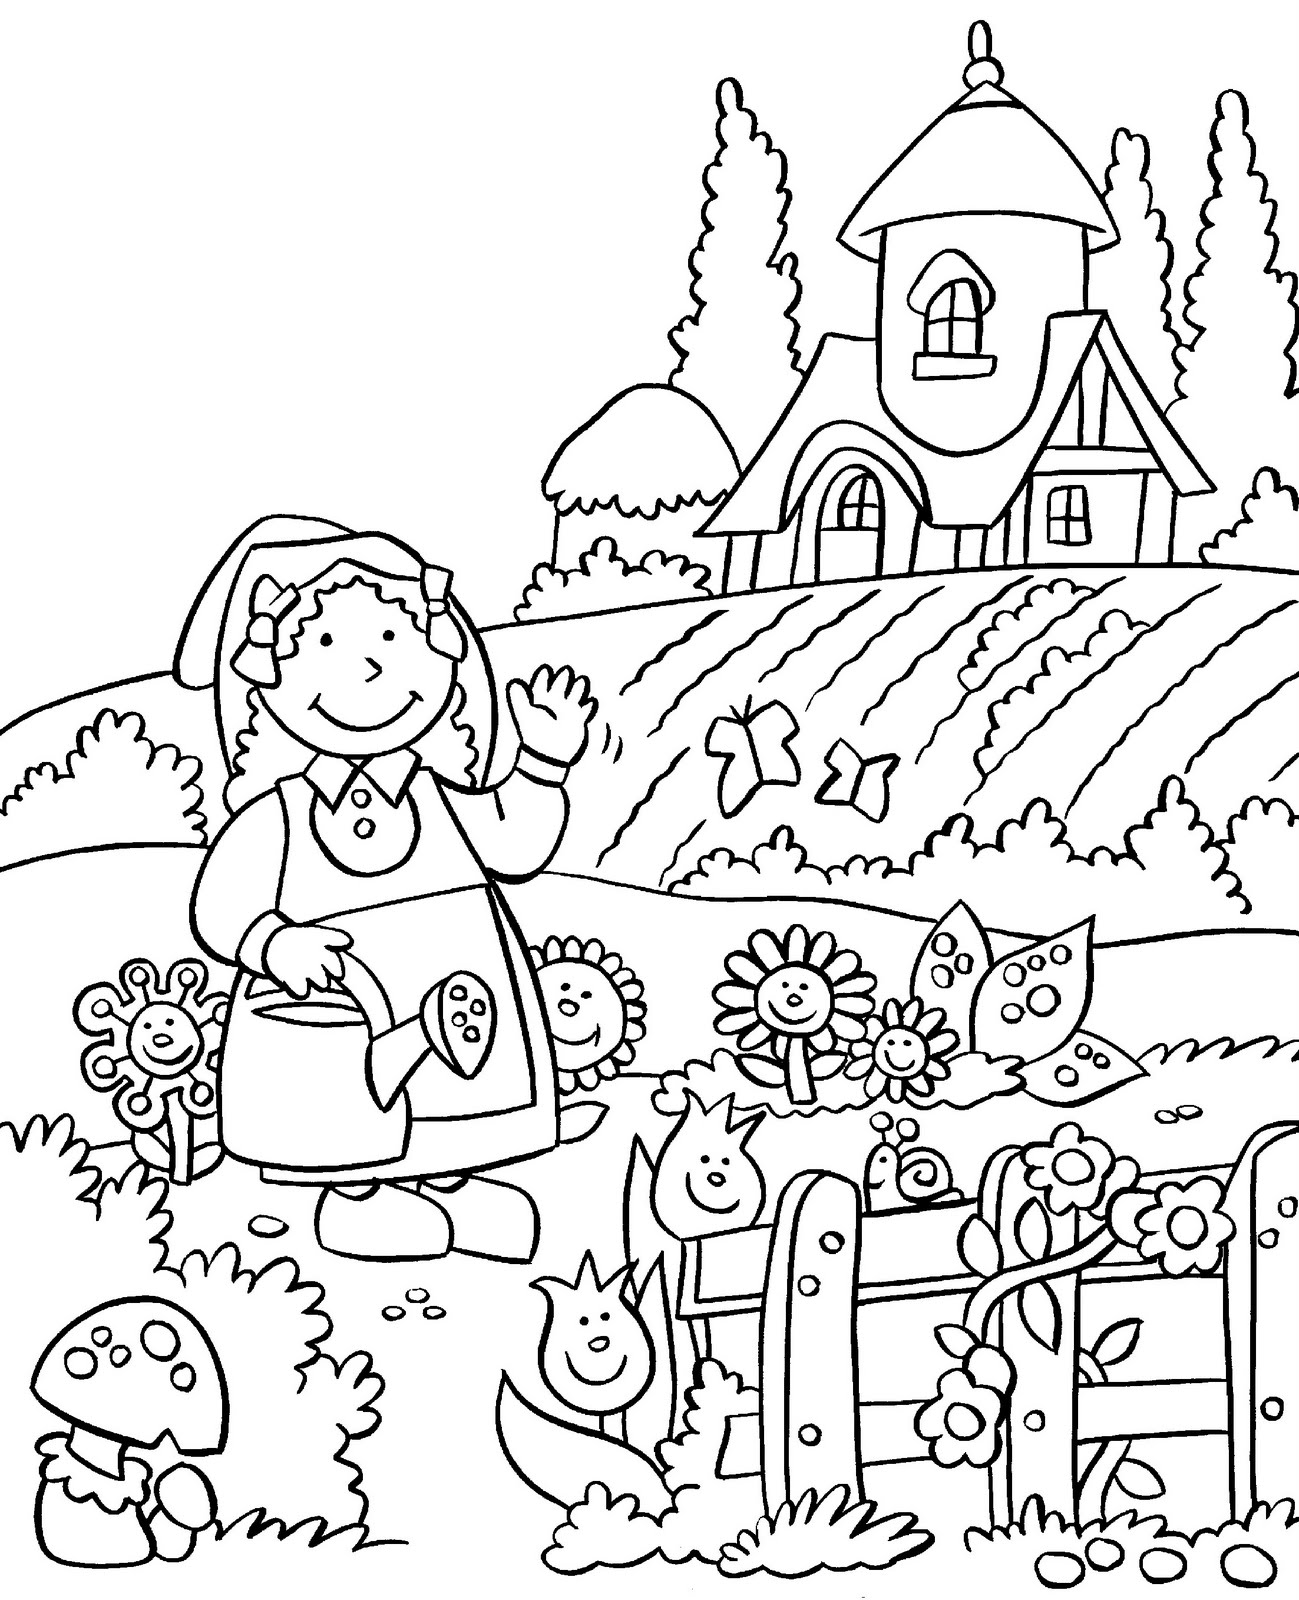 garden colouring pages gardening coloring pages to download and print for free pages garden colouring